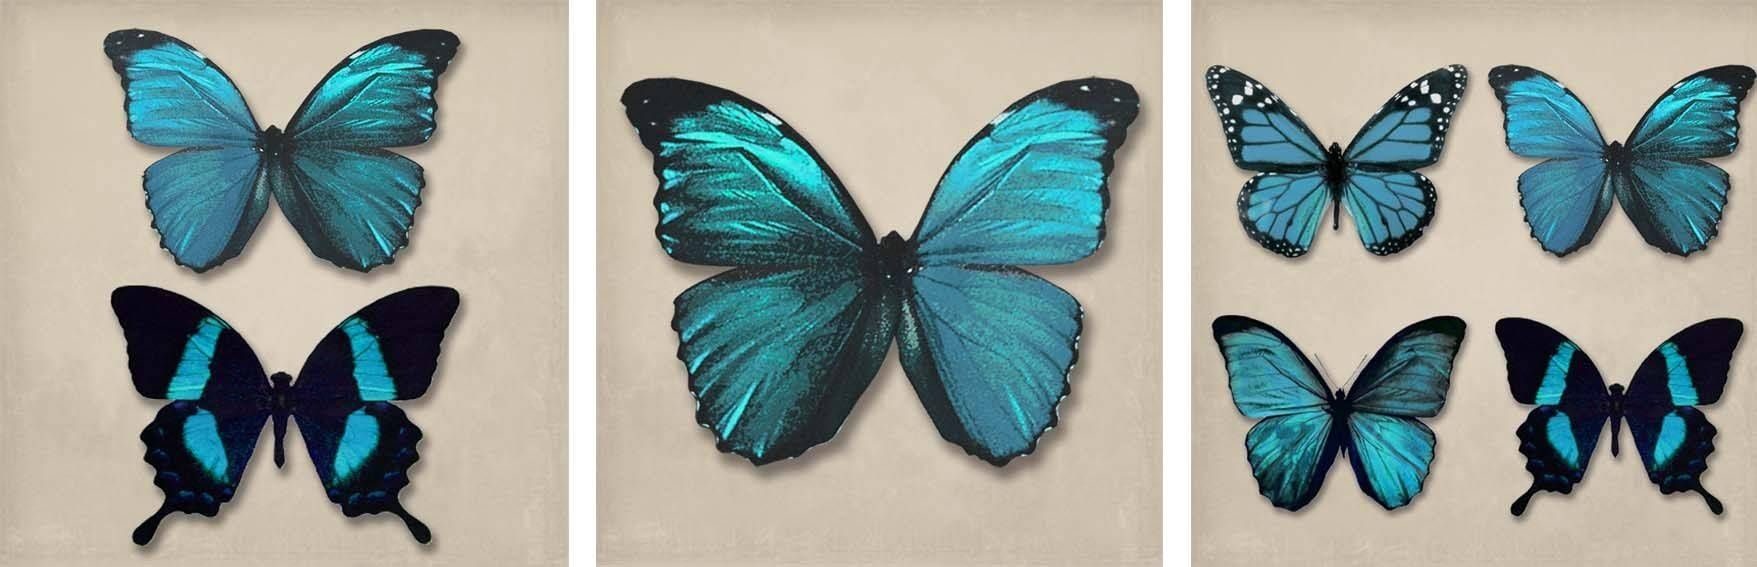 Teal Butterflies Set Of 3 Canvasesarthouse : Wallpaper Direct Intended For 2017 Butterfly Canvas Wall Art (View 19 of 20)